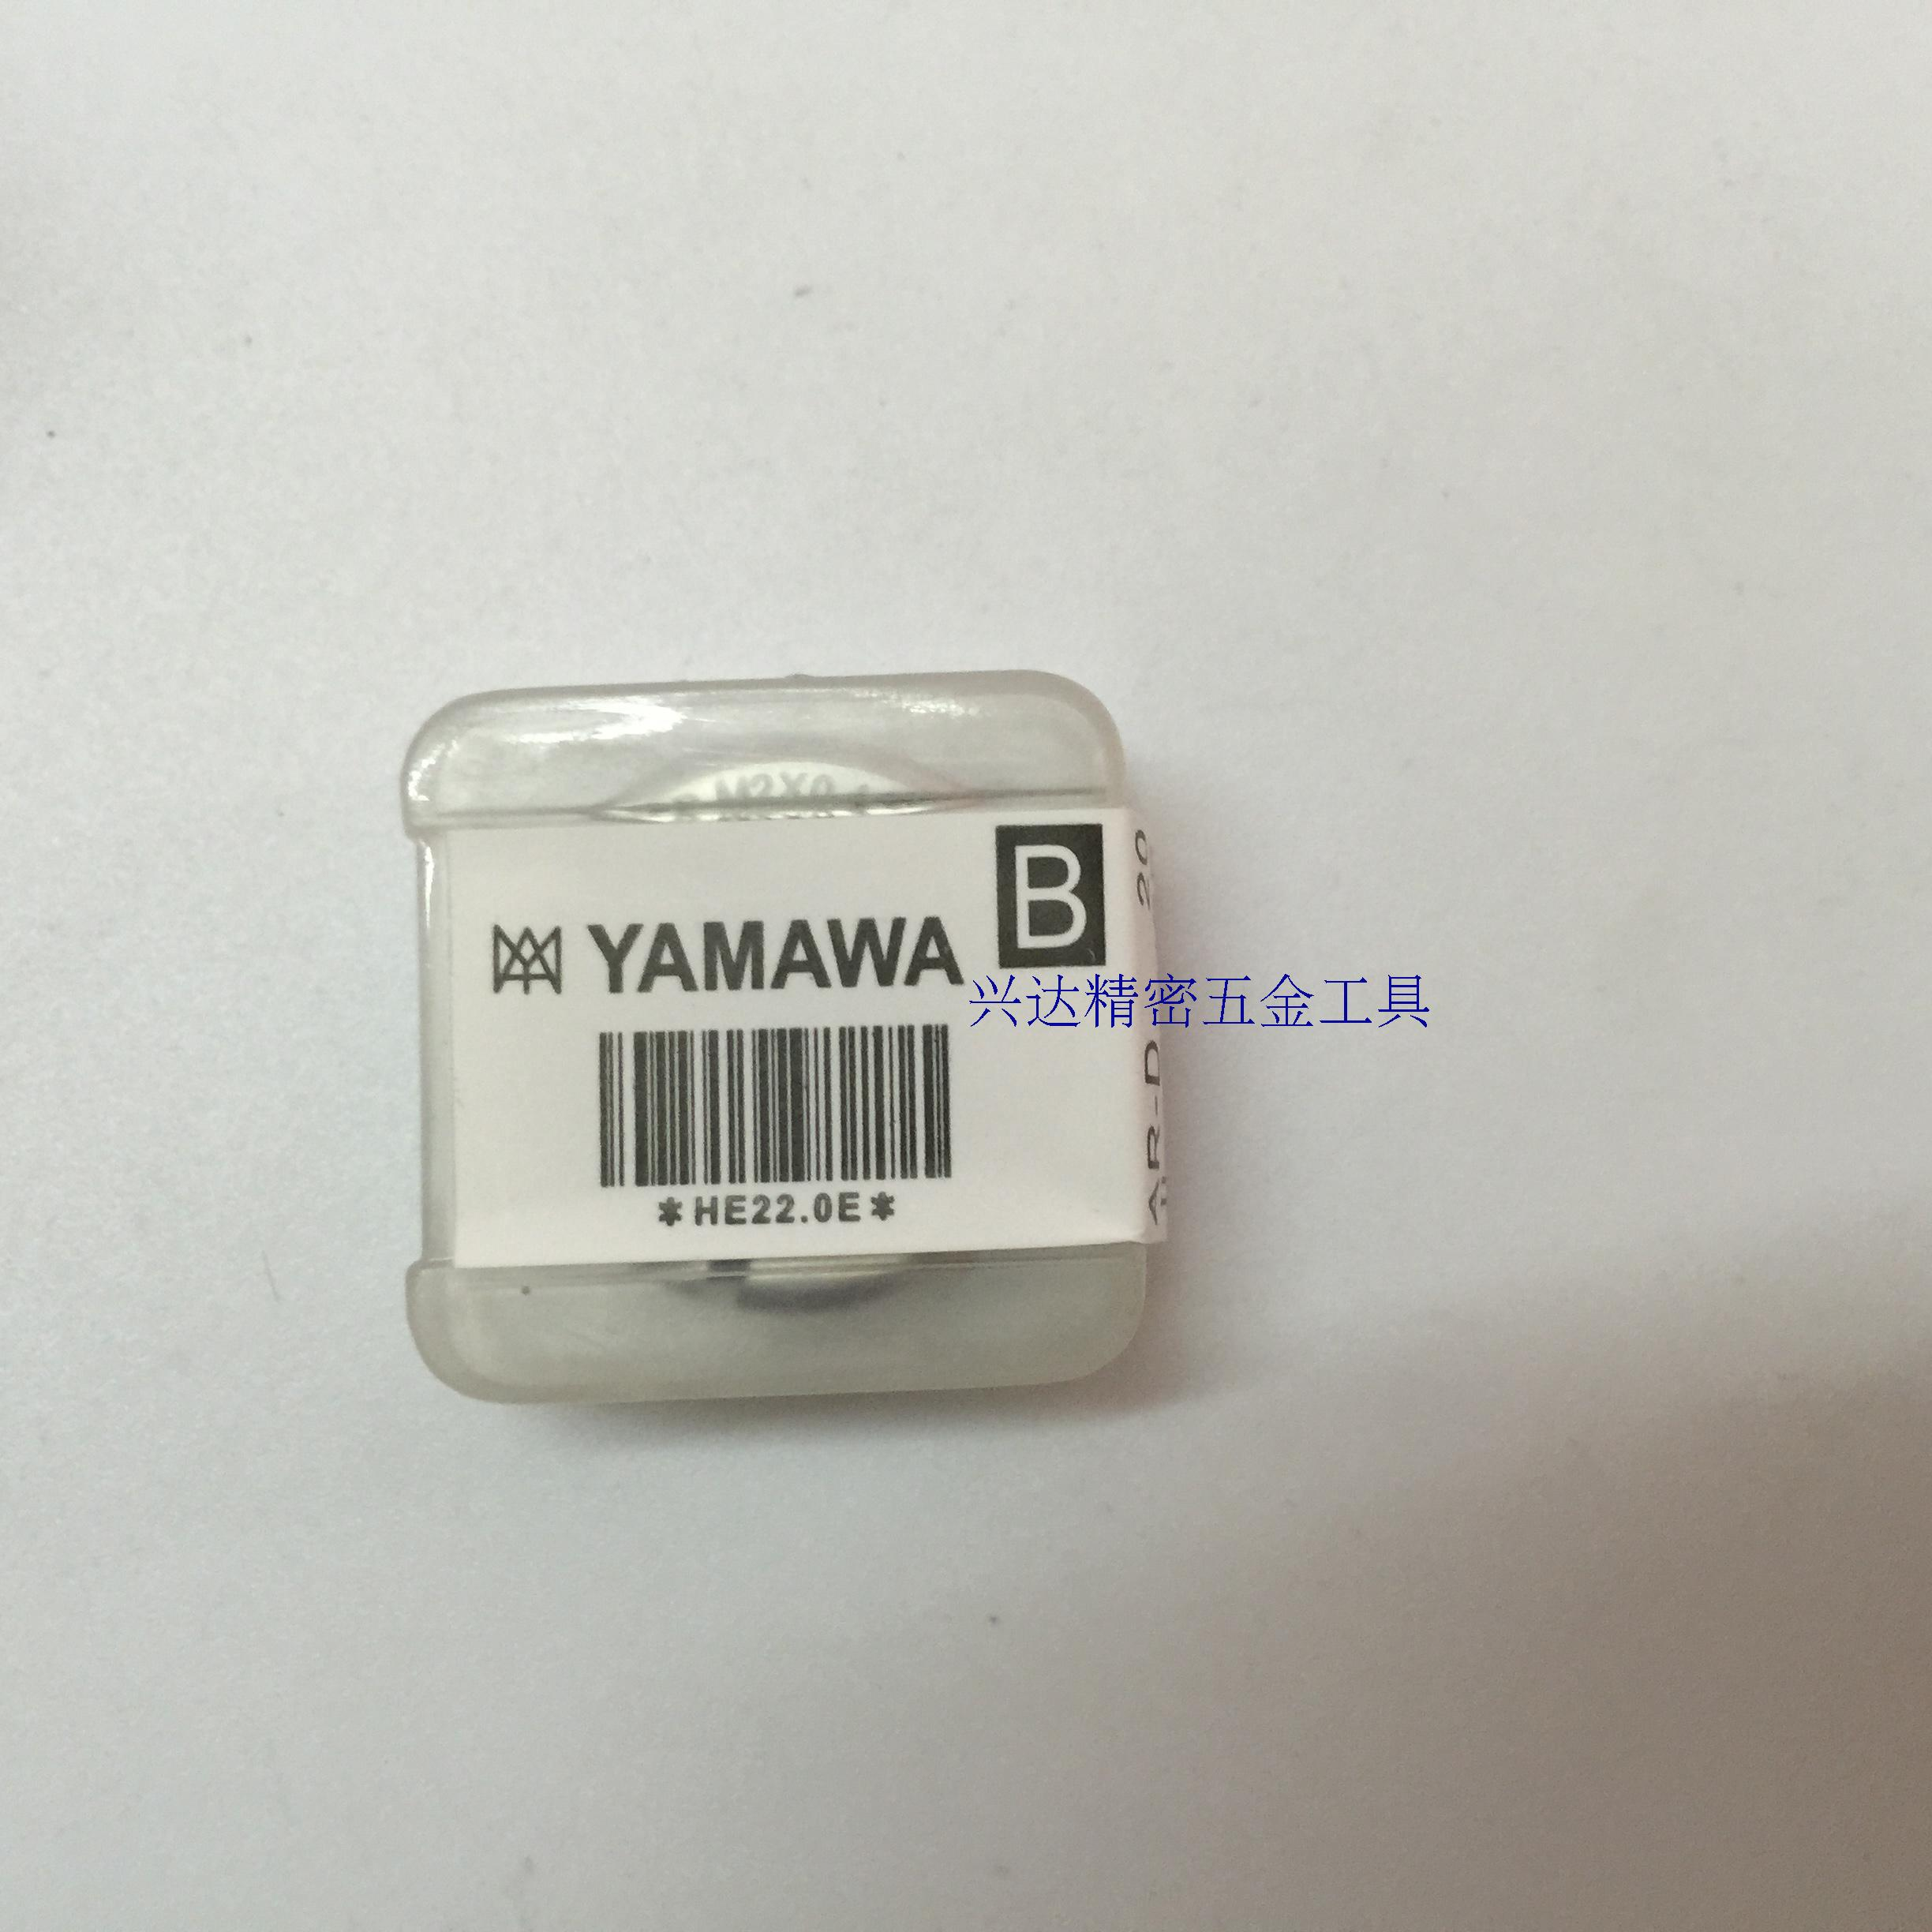 Japanese YAMAWA circular plate tooth, American and British W1/4-201/85/32U1/2-1310-12-24 yuan wrench